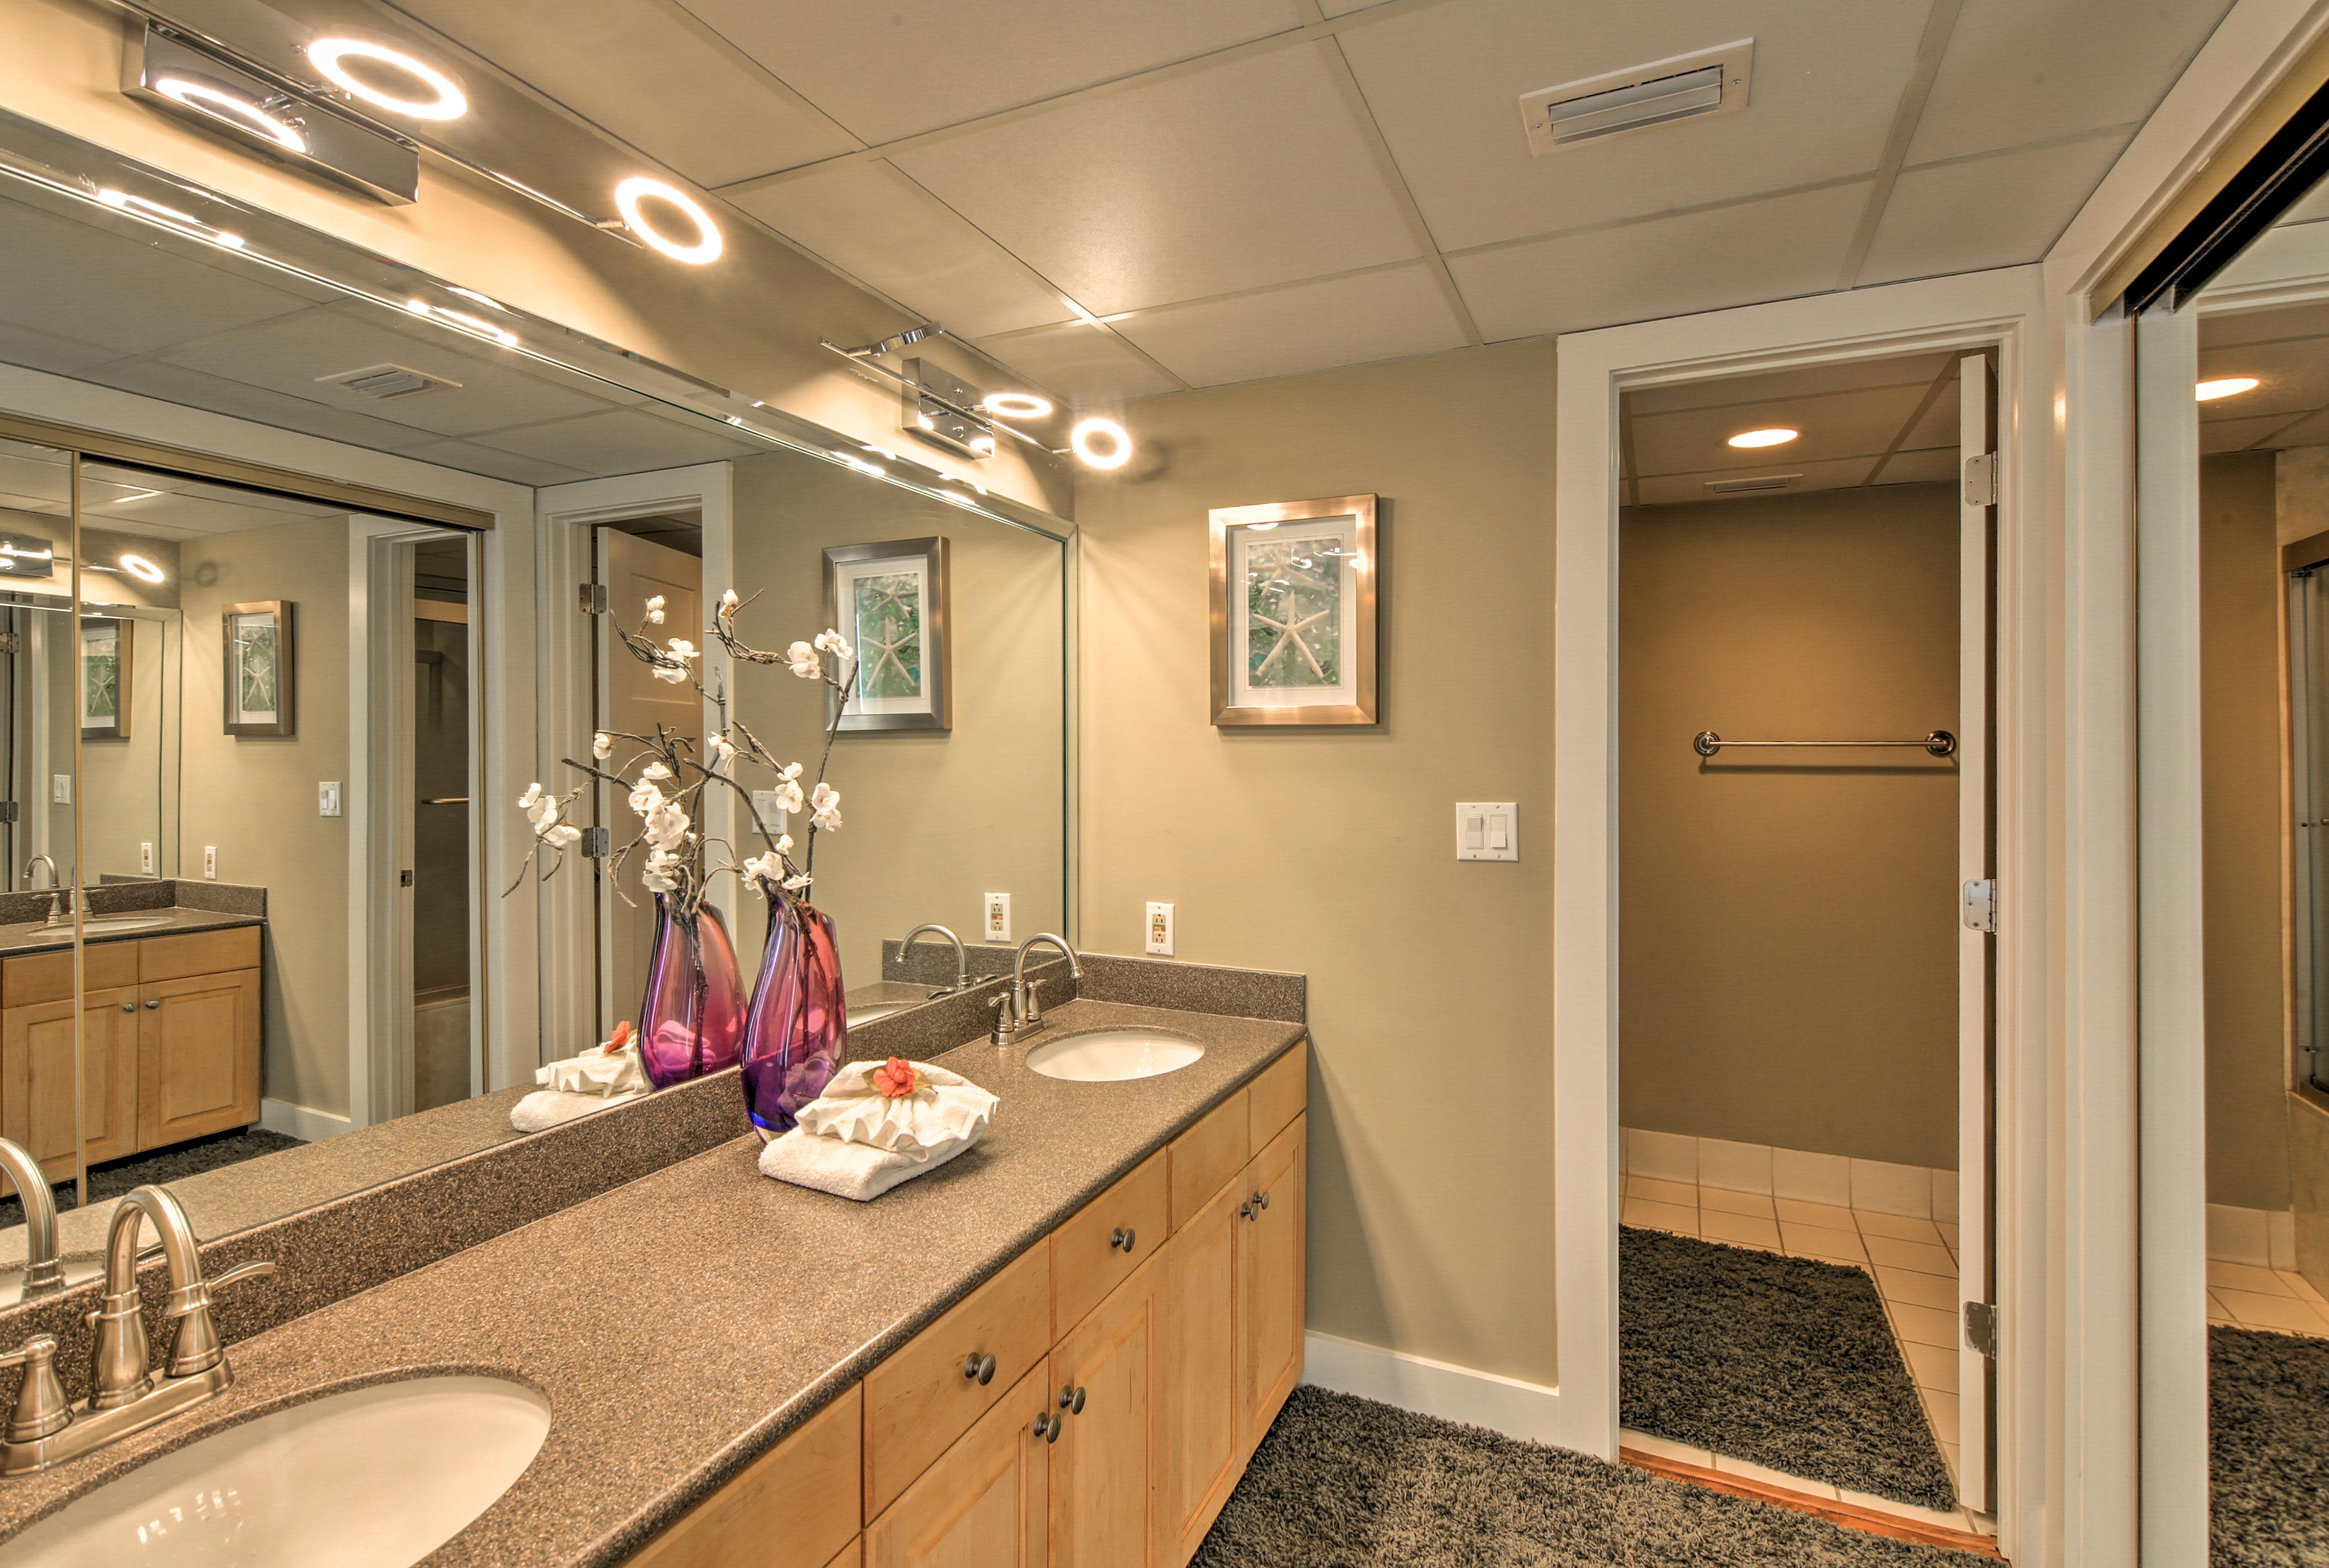 His-and-hers sinks and ample counter space make it easy to share this bathroom.